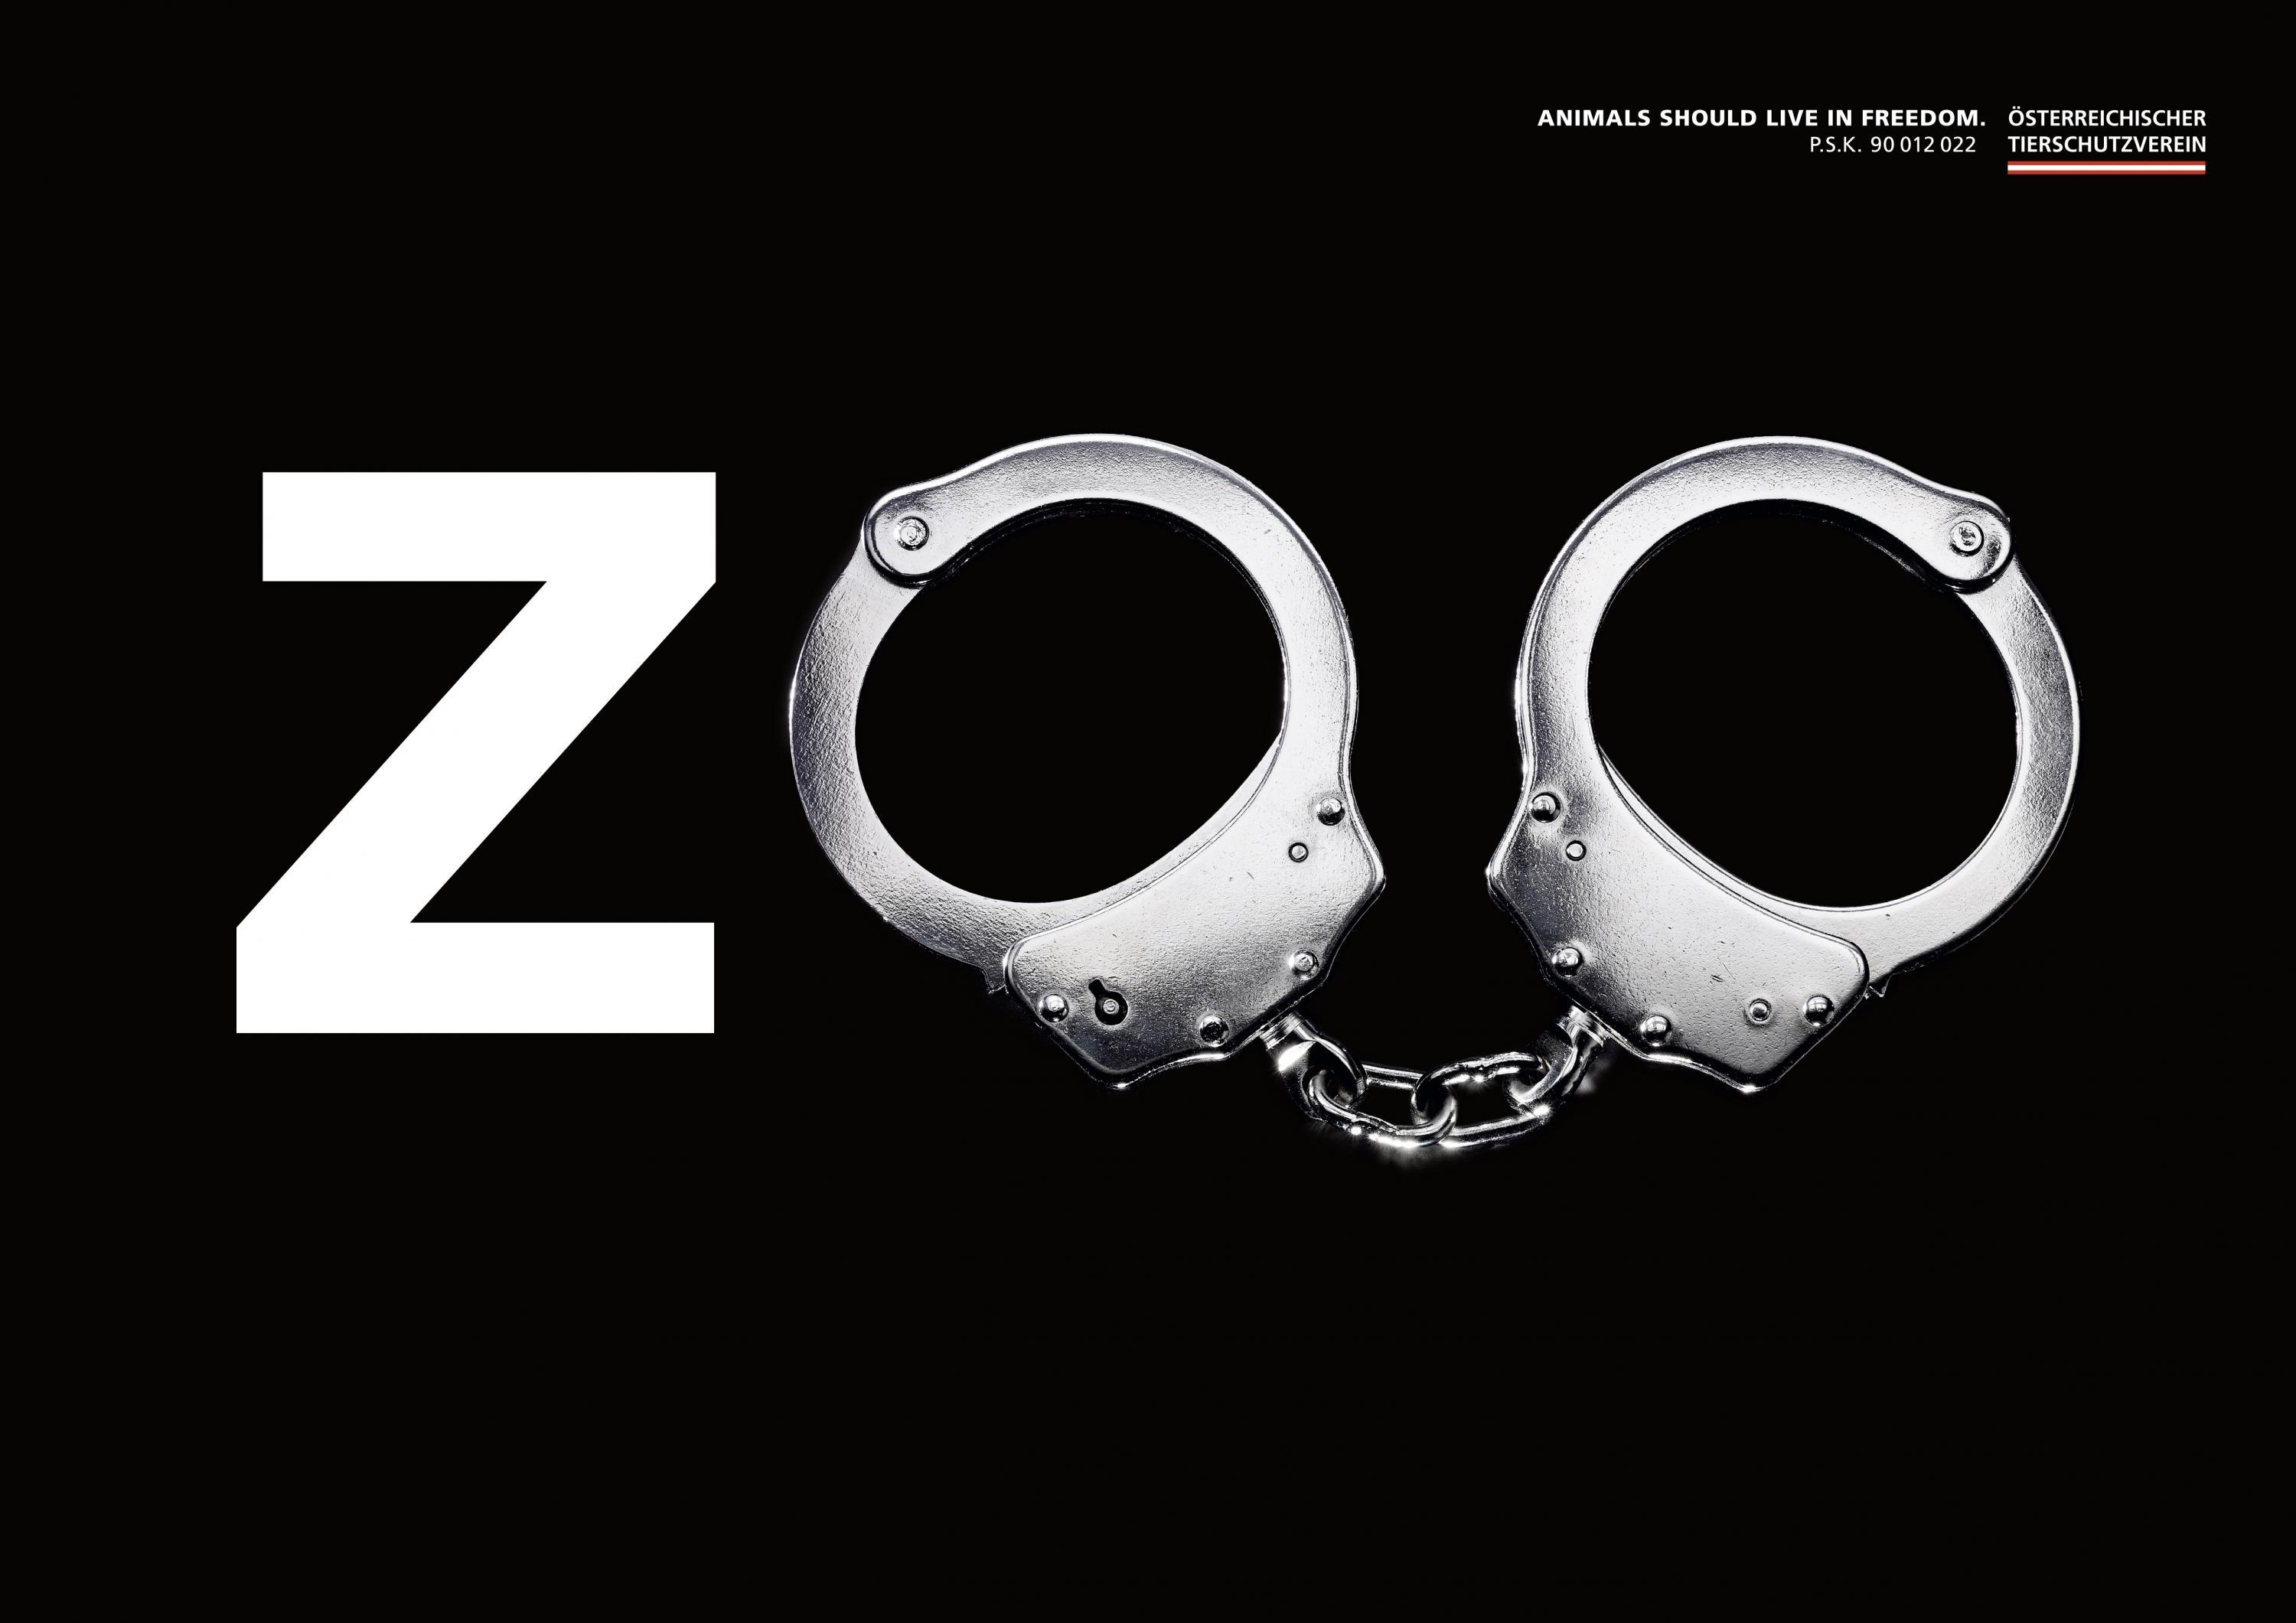 n society for the prevention of cruelty to animals animal n society for the prevention of cruelty to animals animal cruelty awareness zoo